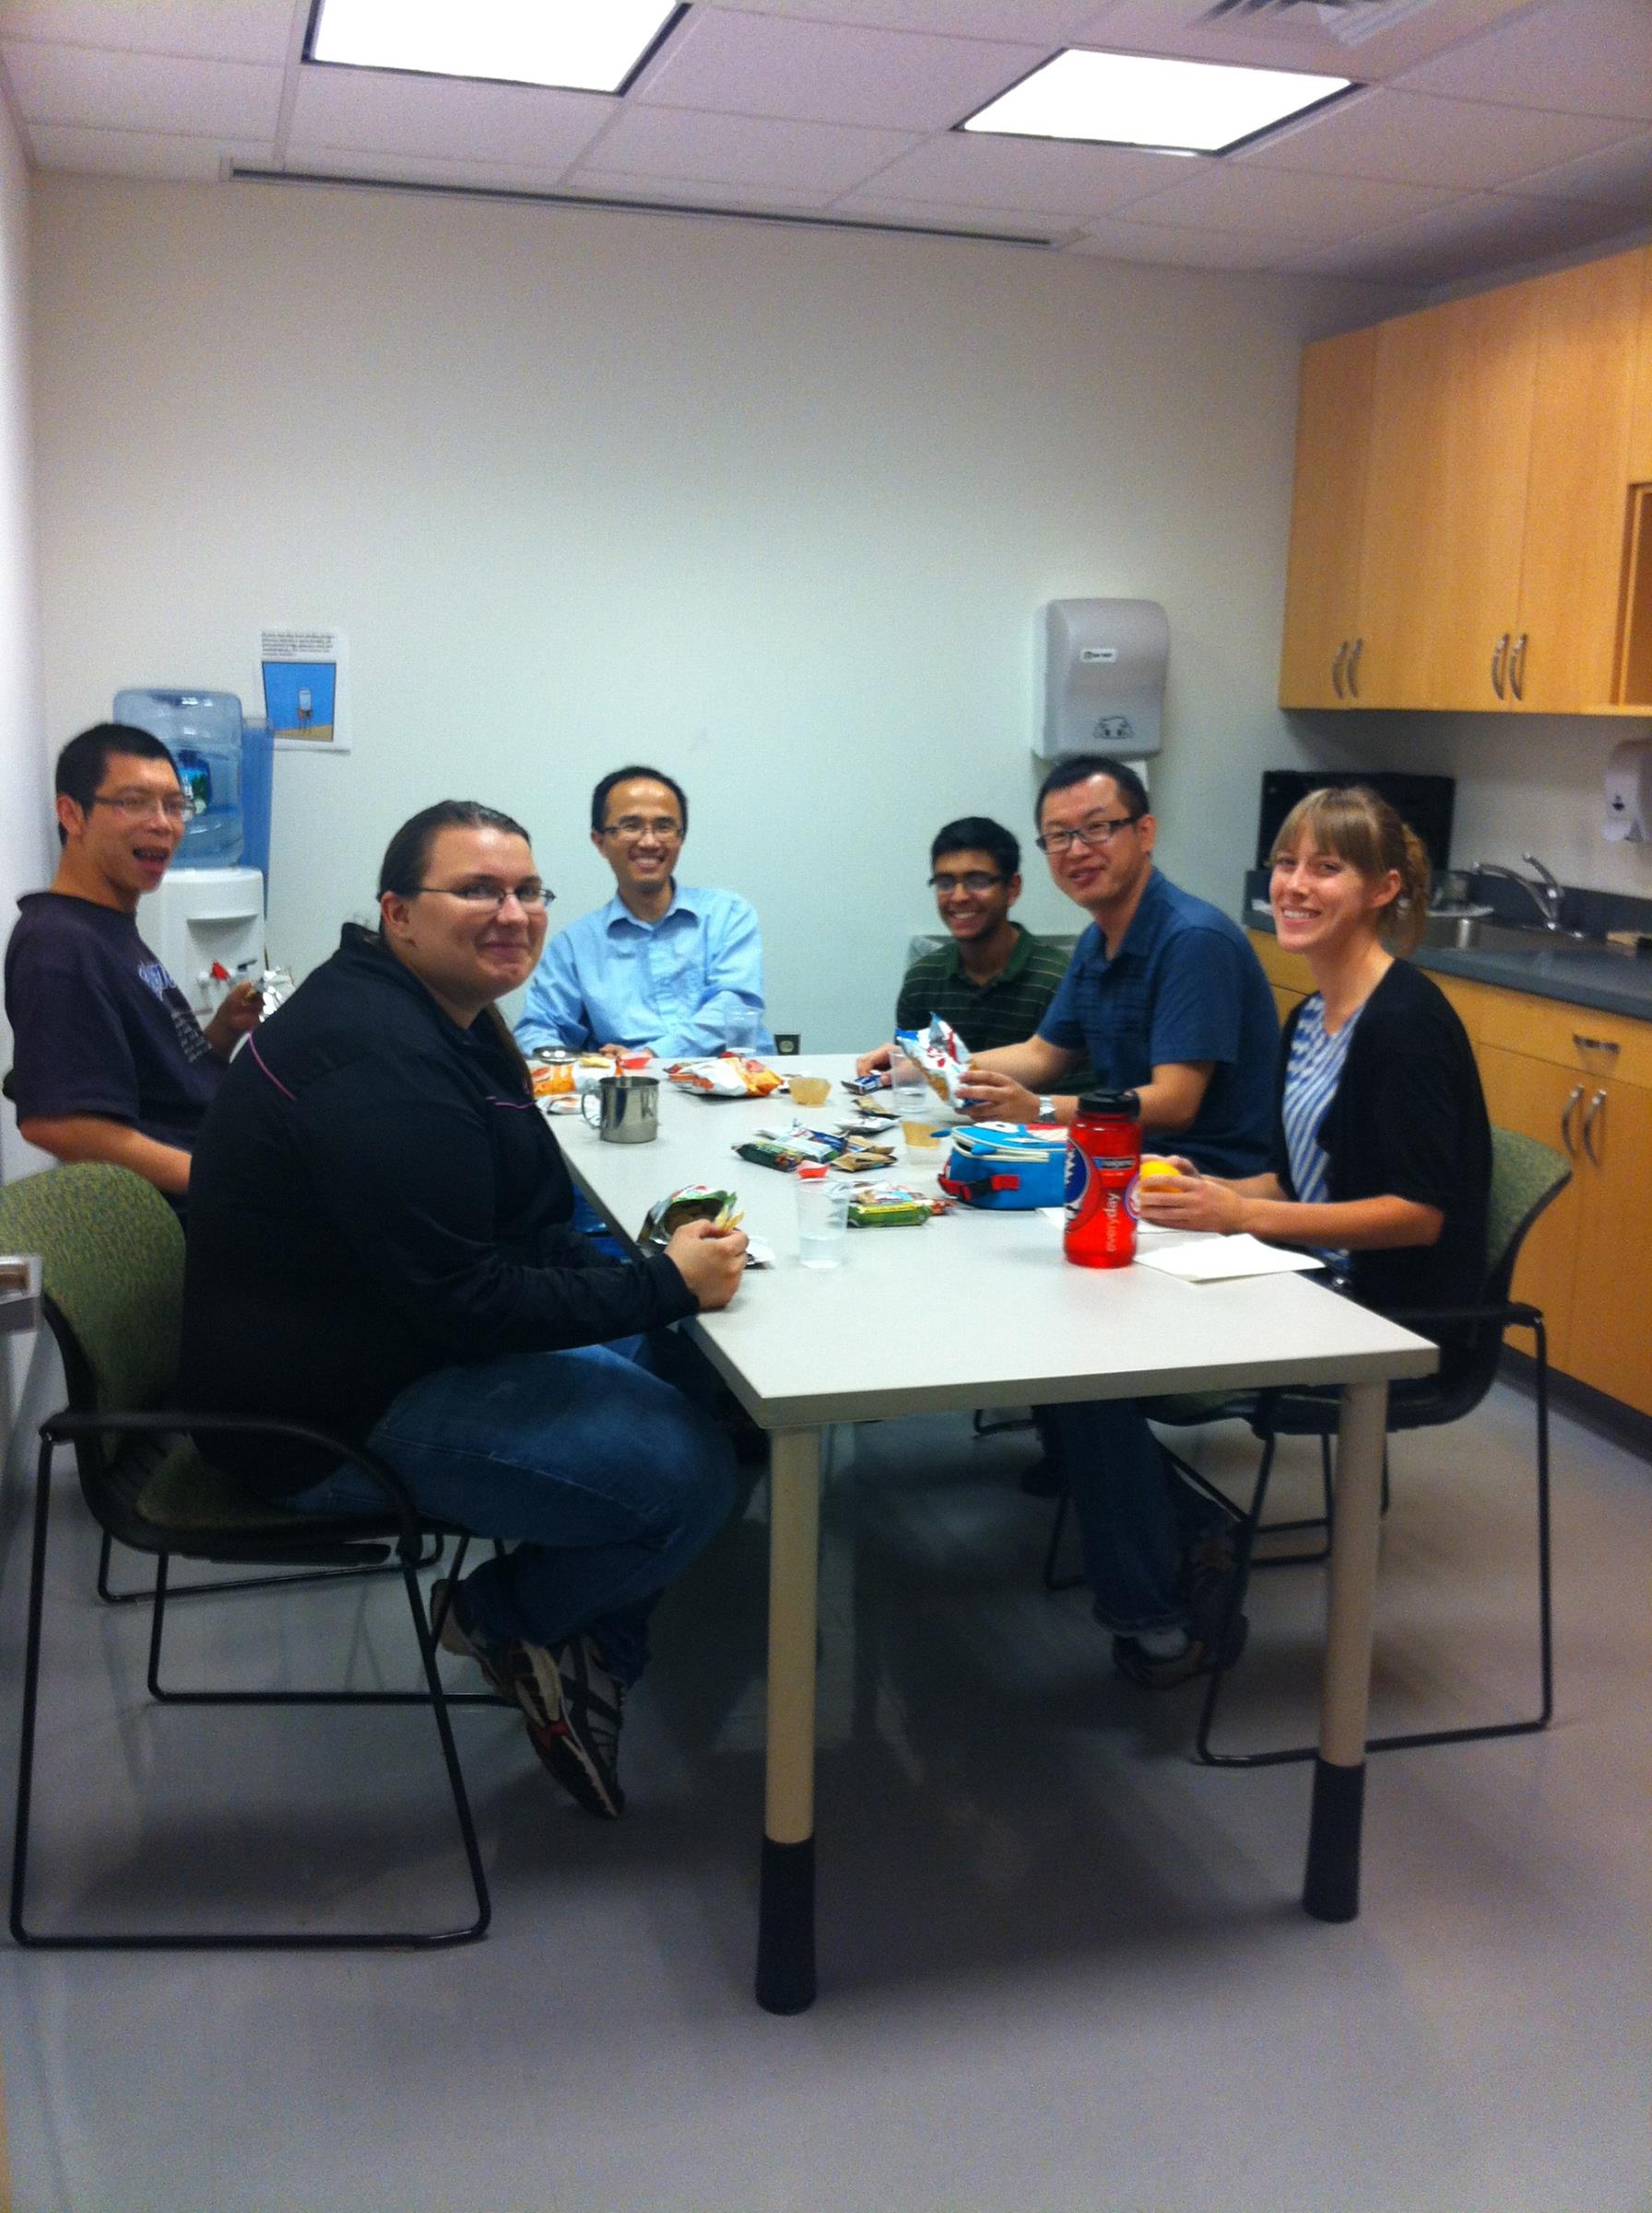 Lab Lunch 2012